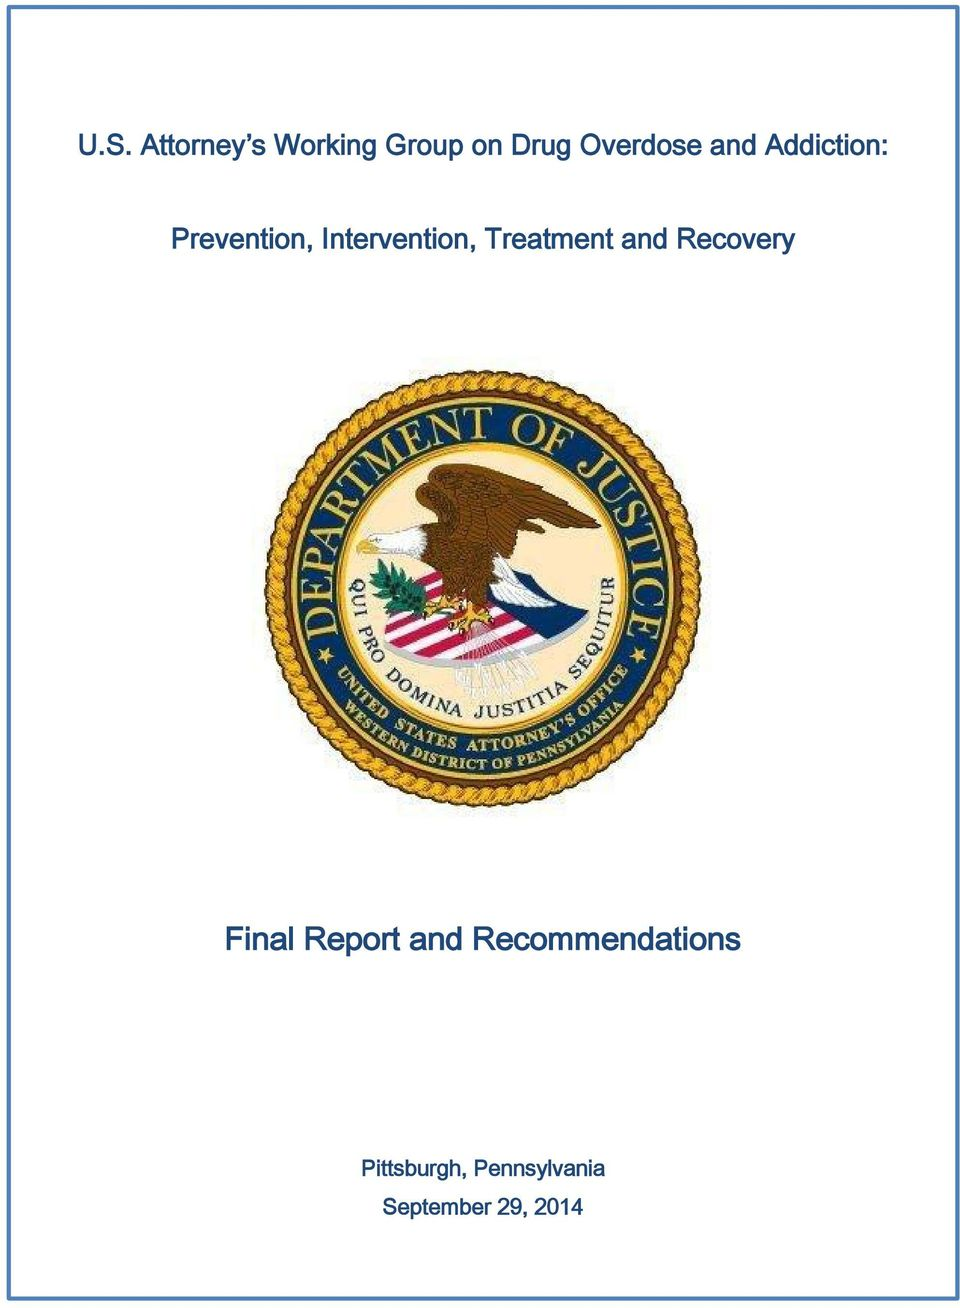 Treatment and Recovery Final Report and